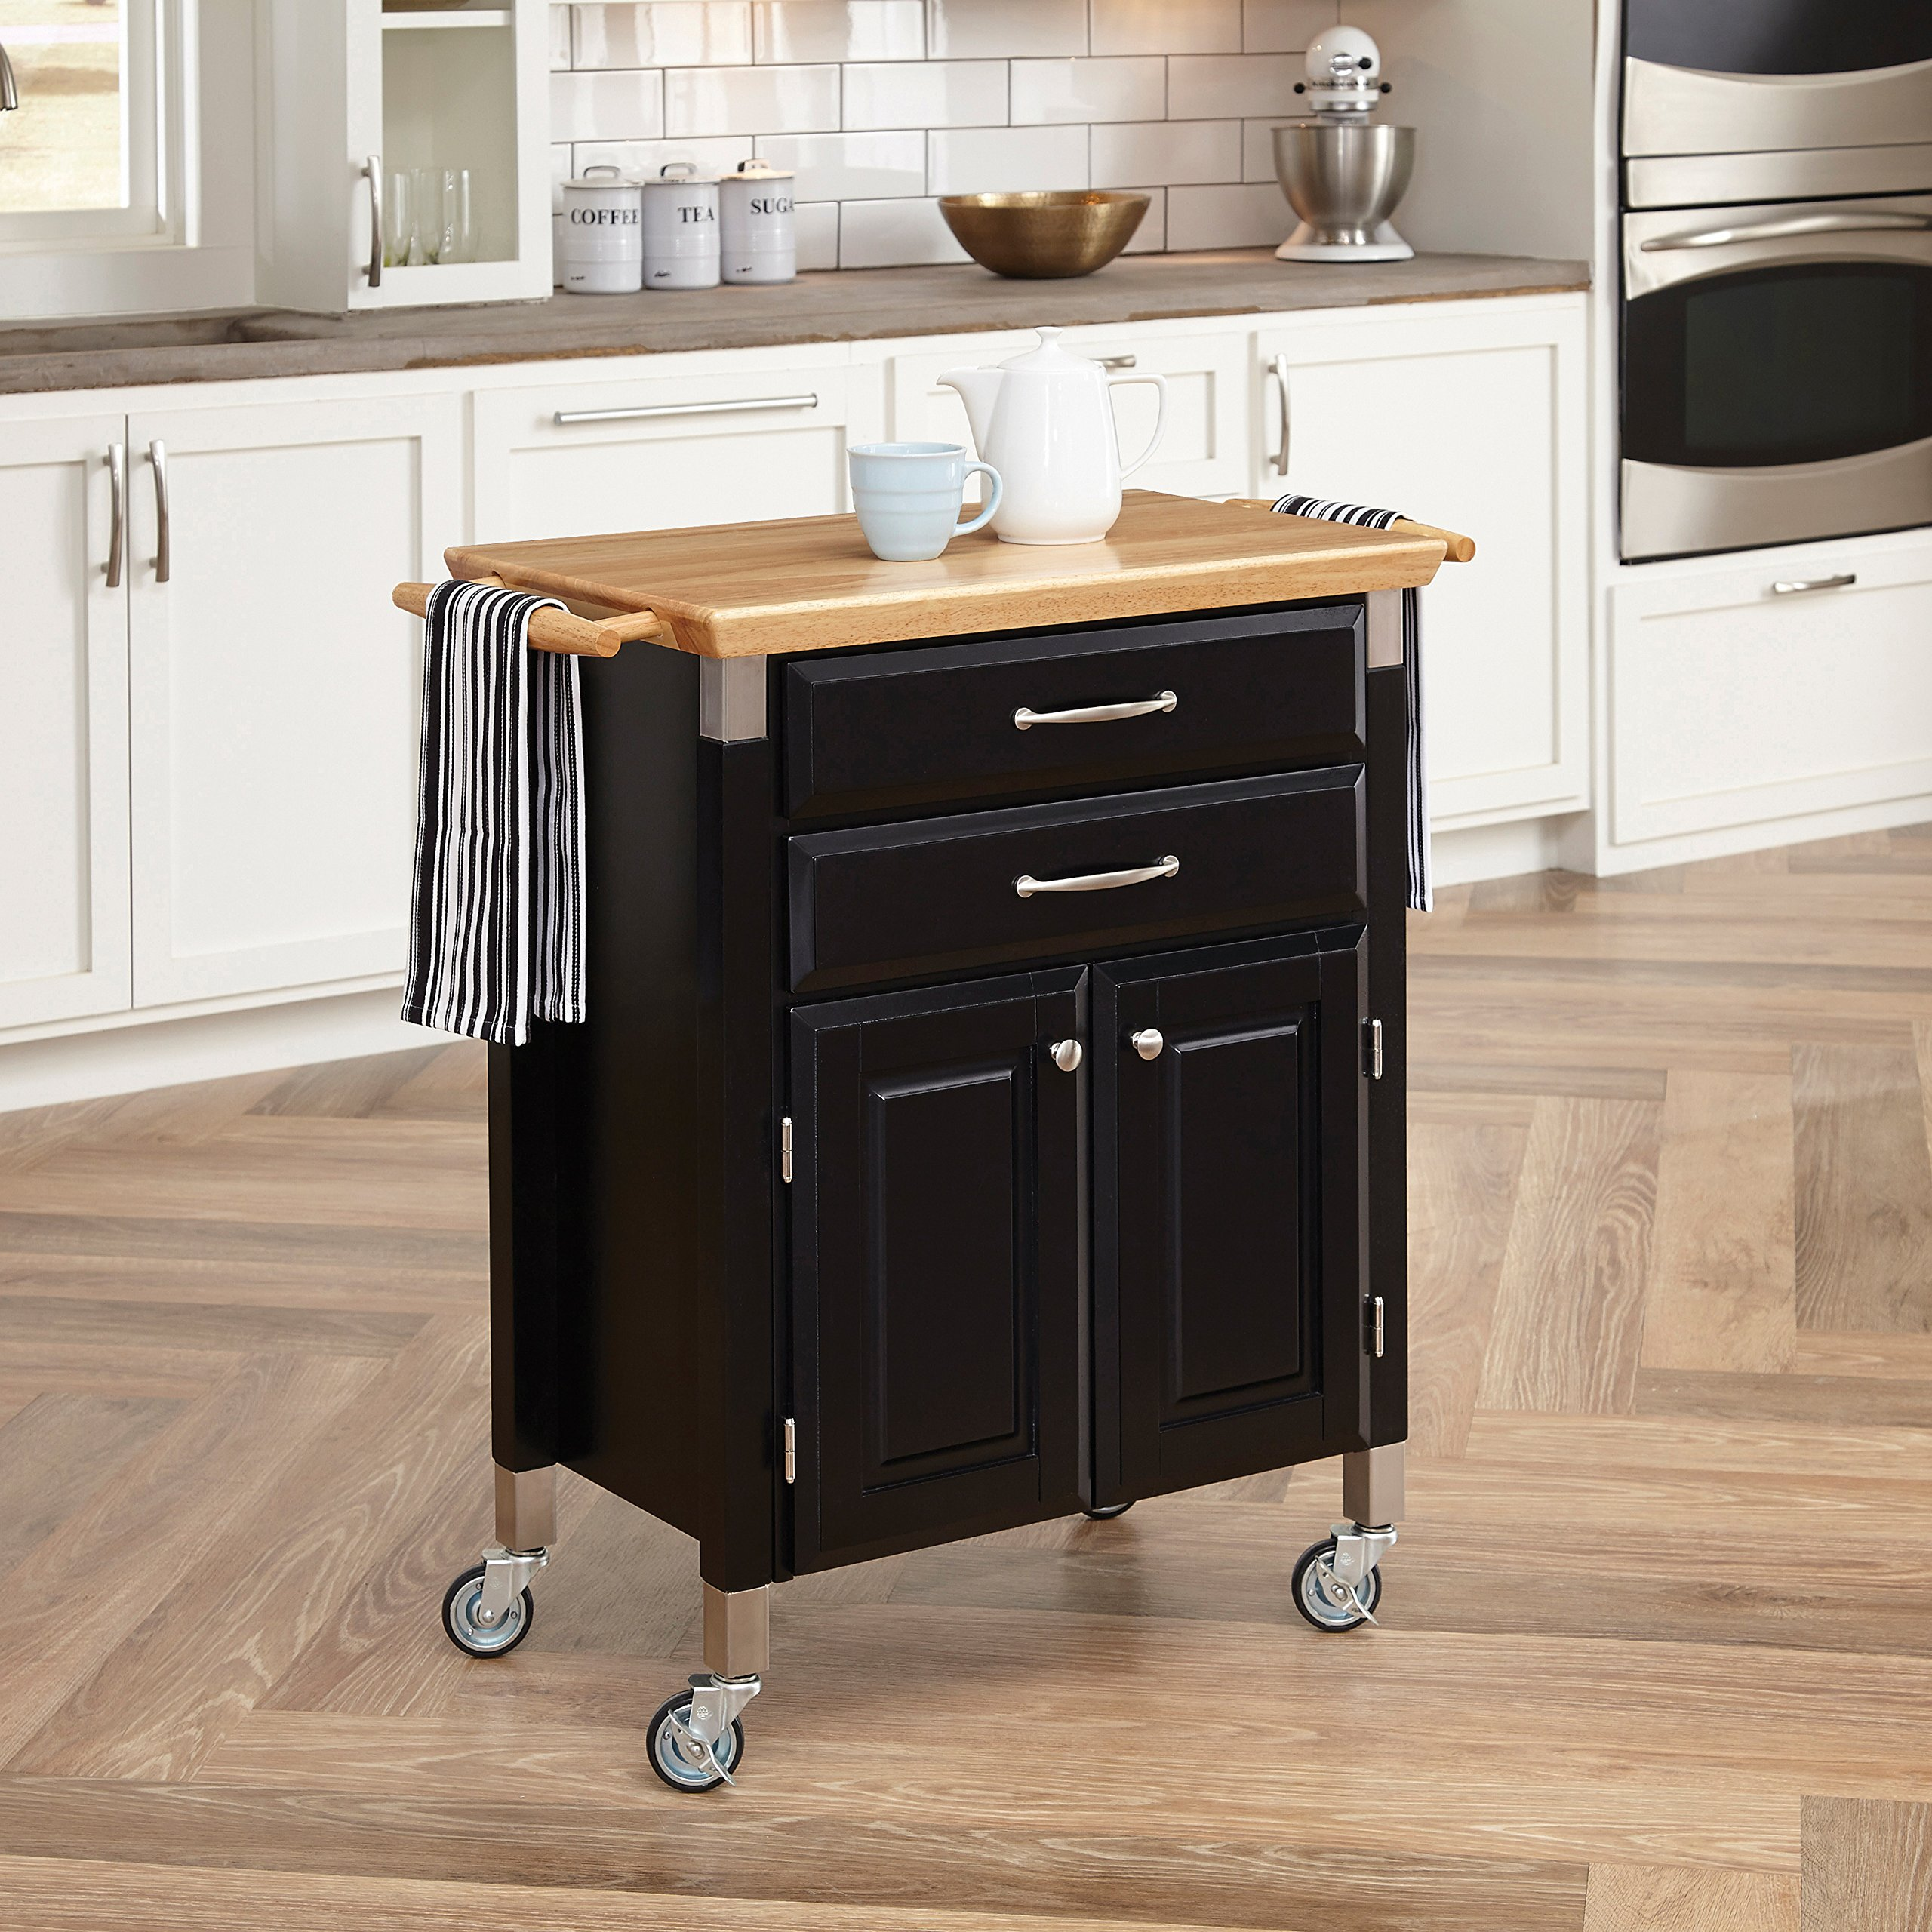 Dolly Madison Black Prep and Serve Cart by Home Styles